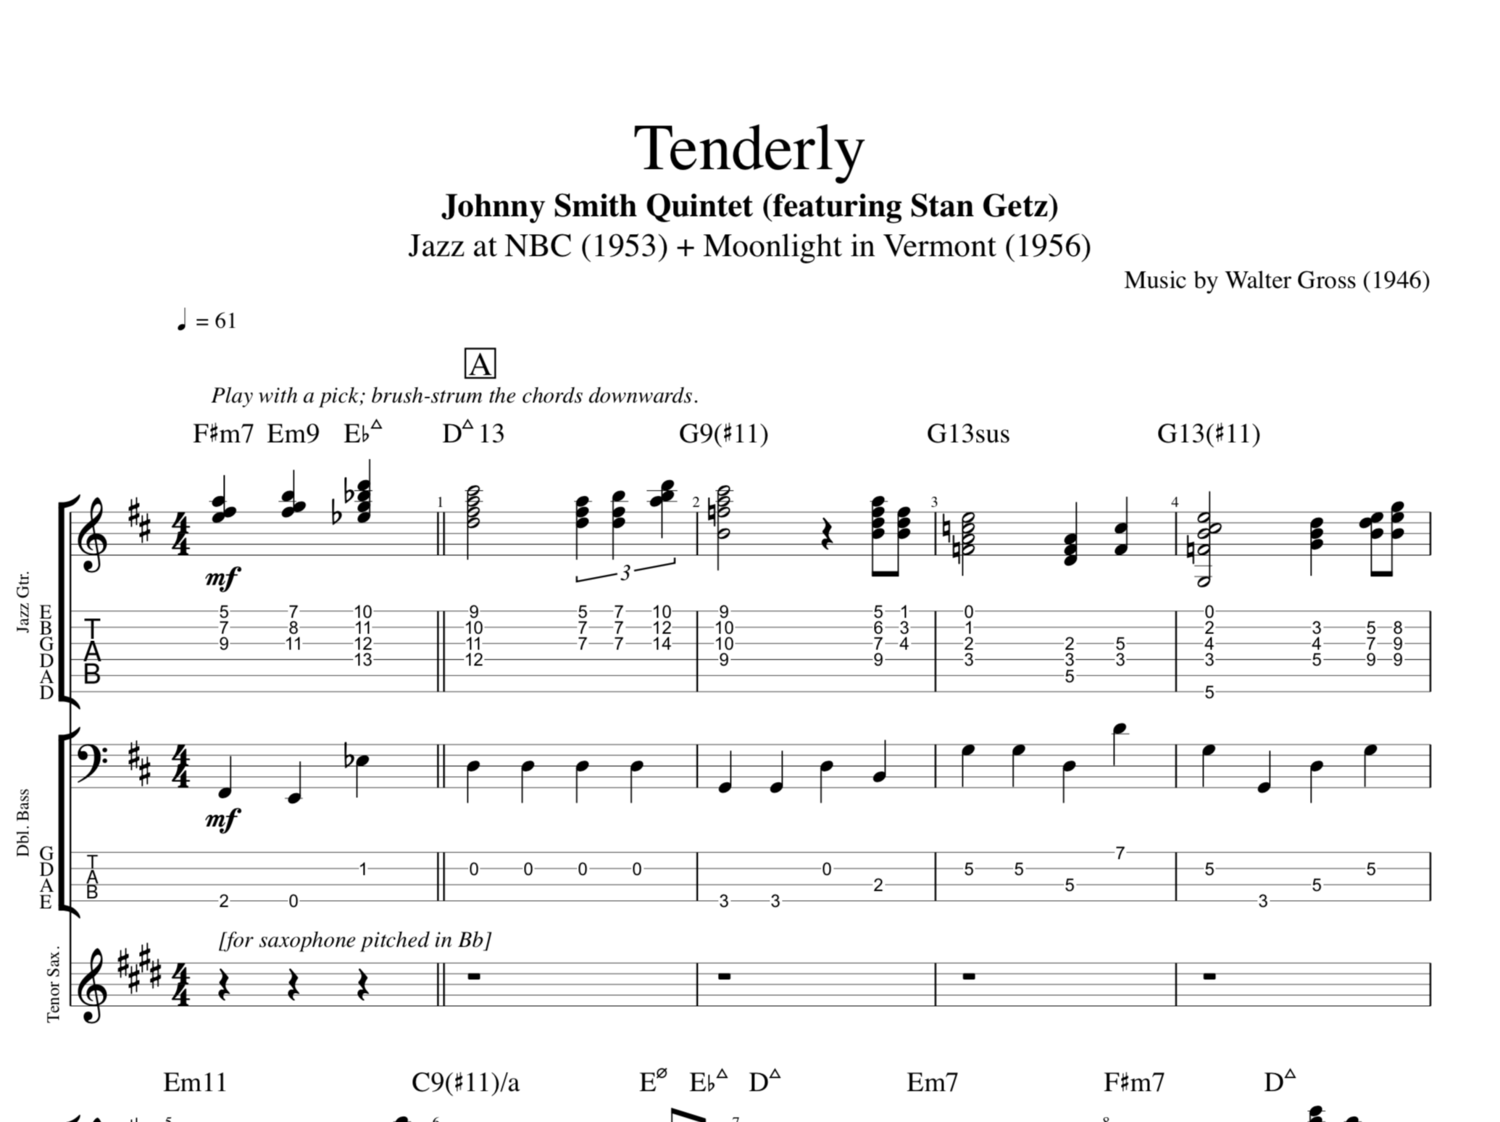 Tenderly By Johnny Smith Quintet Featuring Stan Getz Guitar